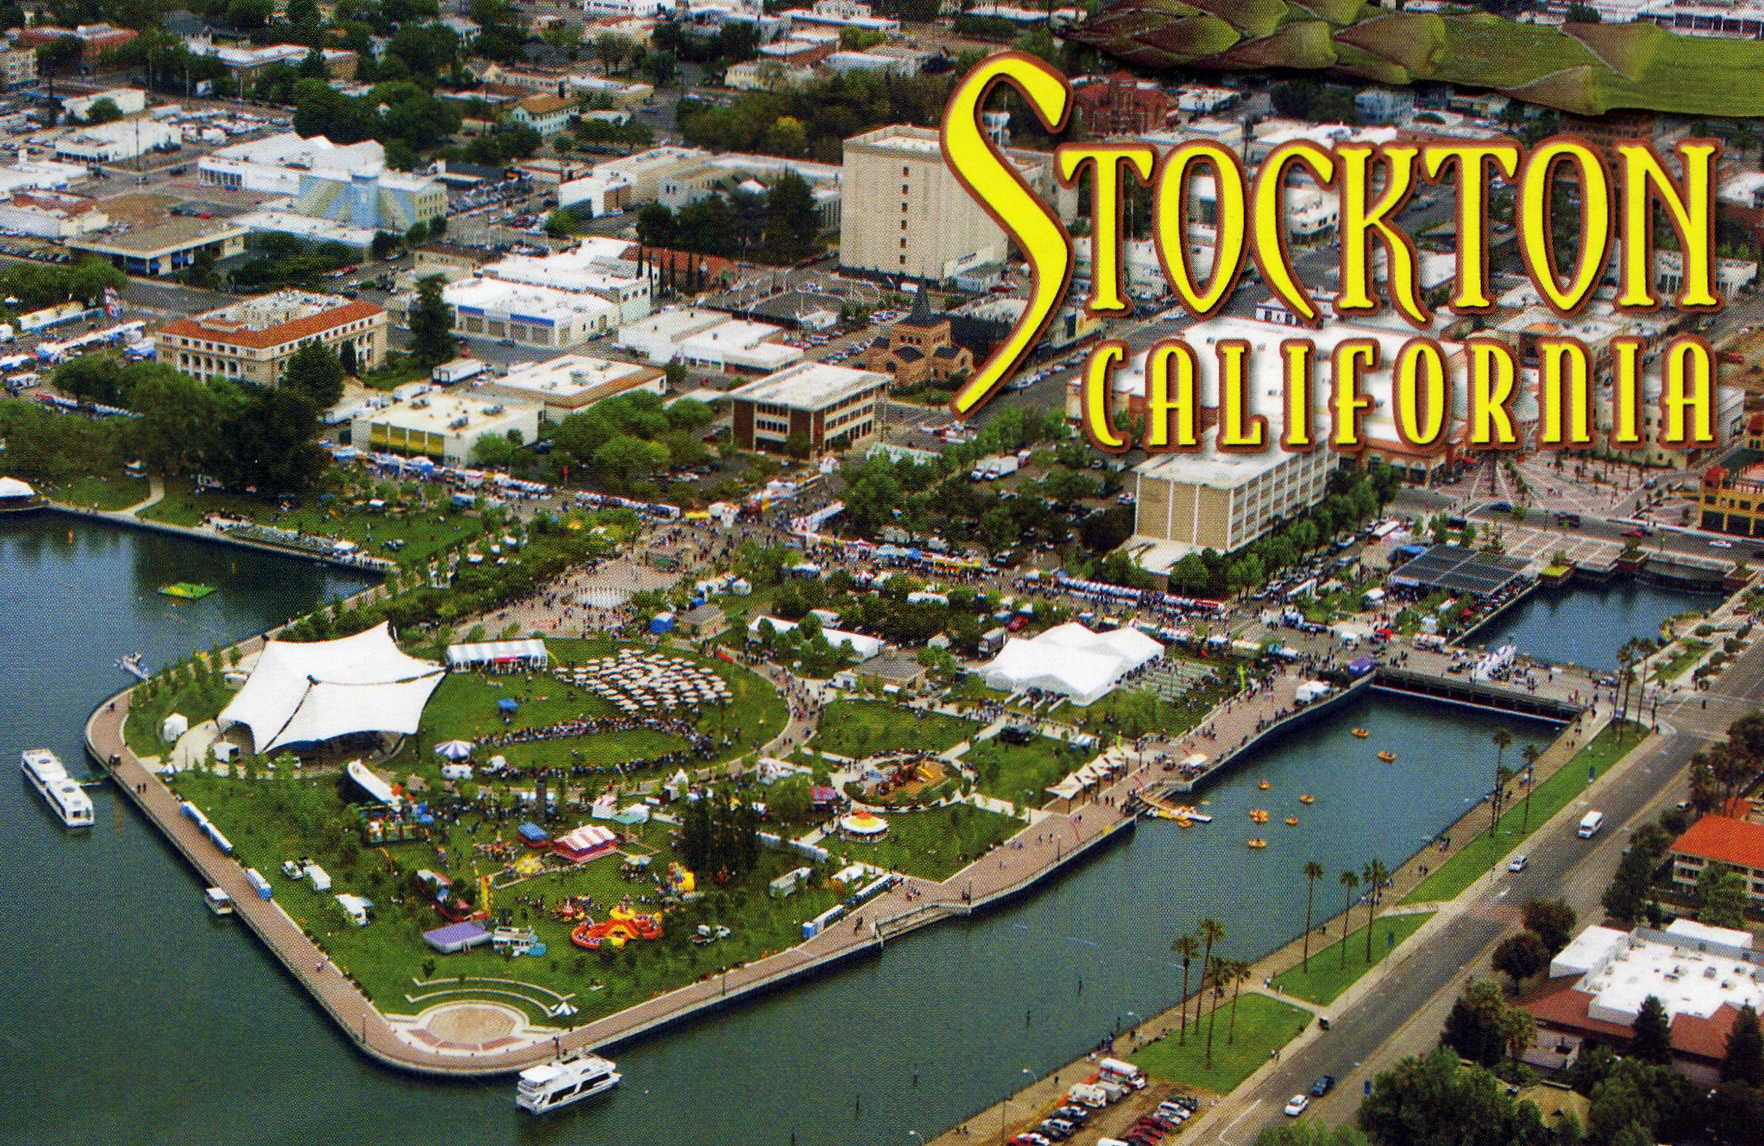 UNITED STATES: Stockton, California plans a Basic Income Demonstration